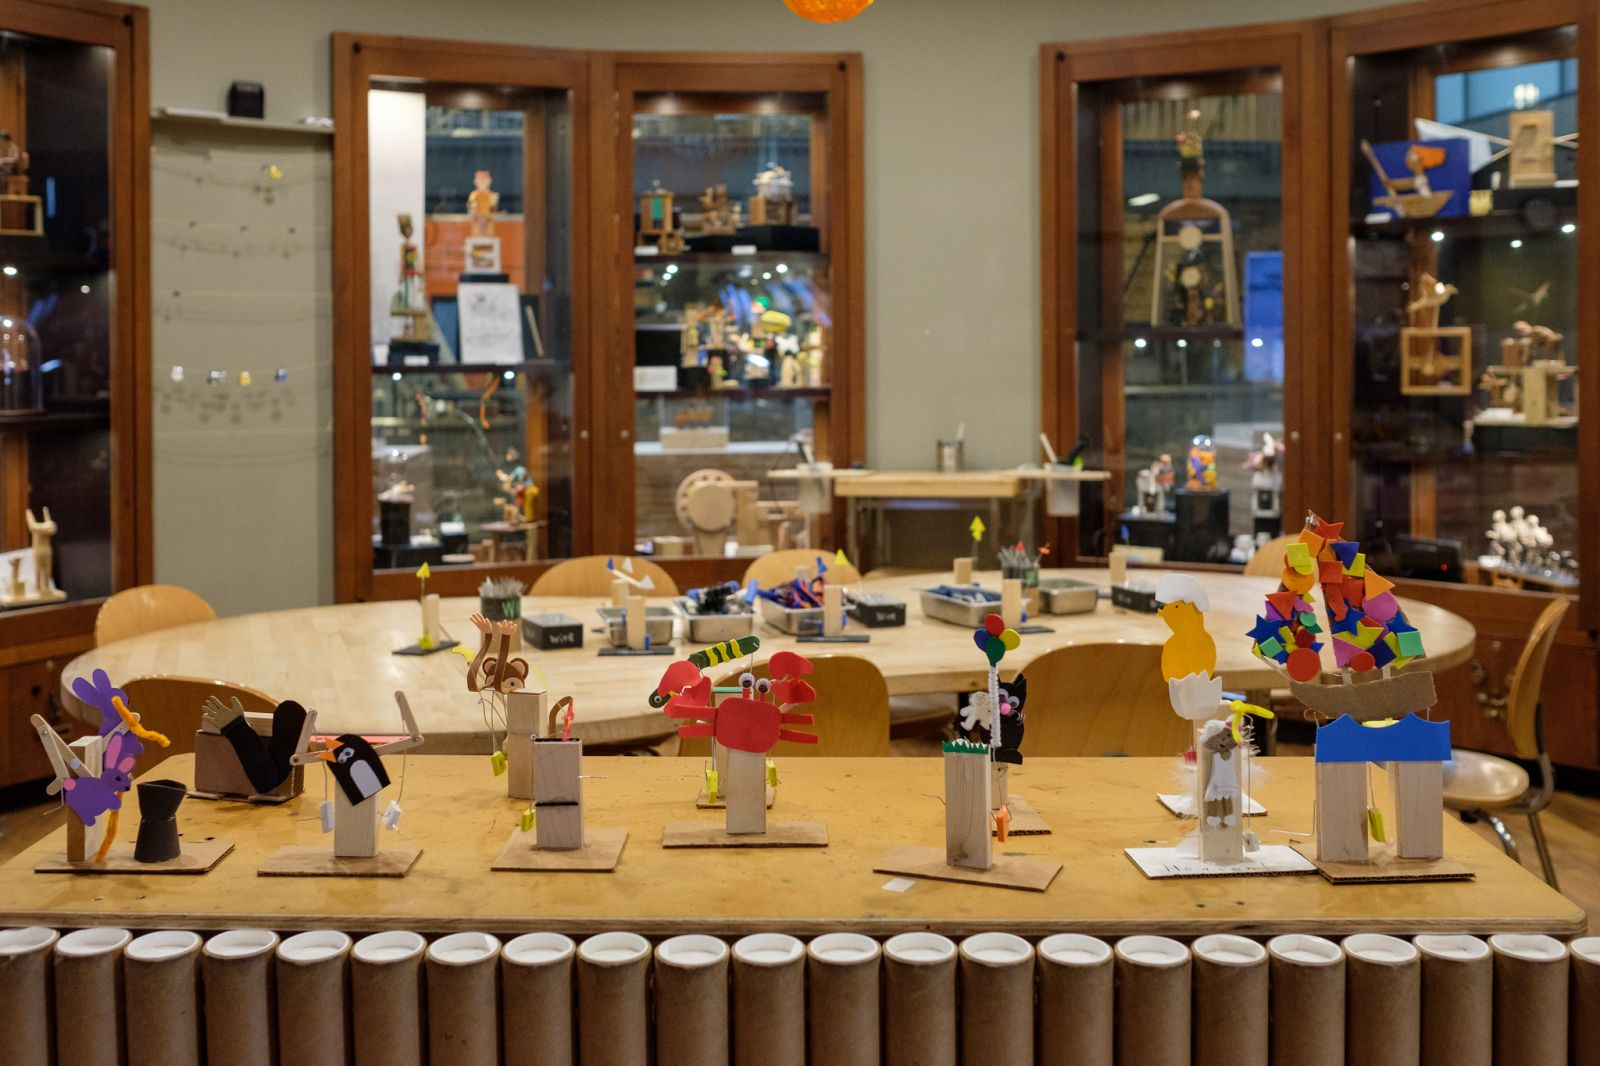 Cranky Contraptions examples set on a table in front of the Tinkering Studio